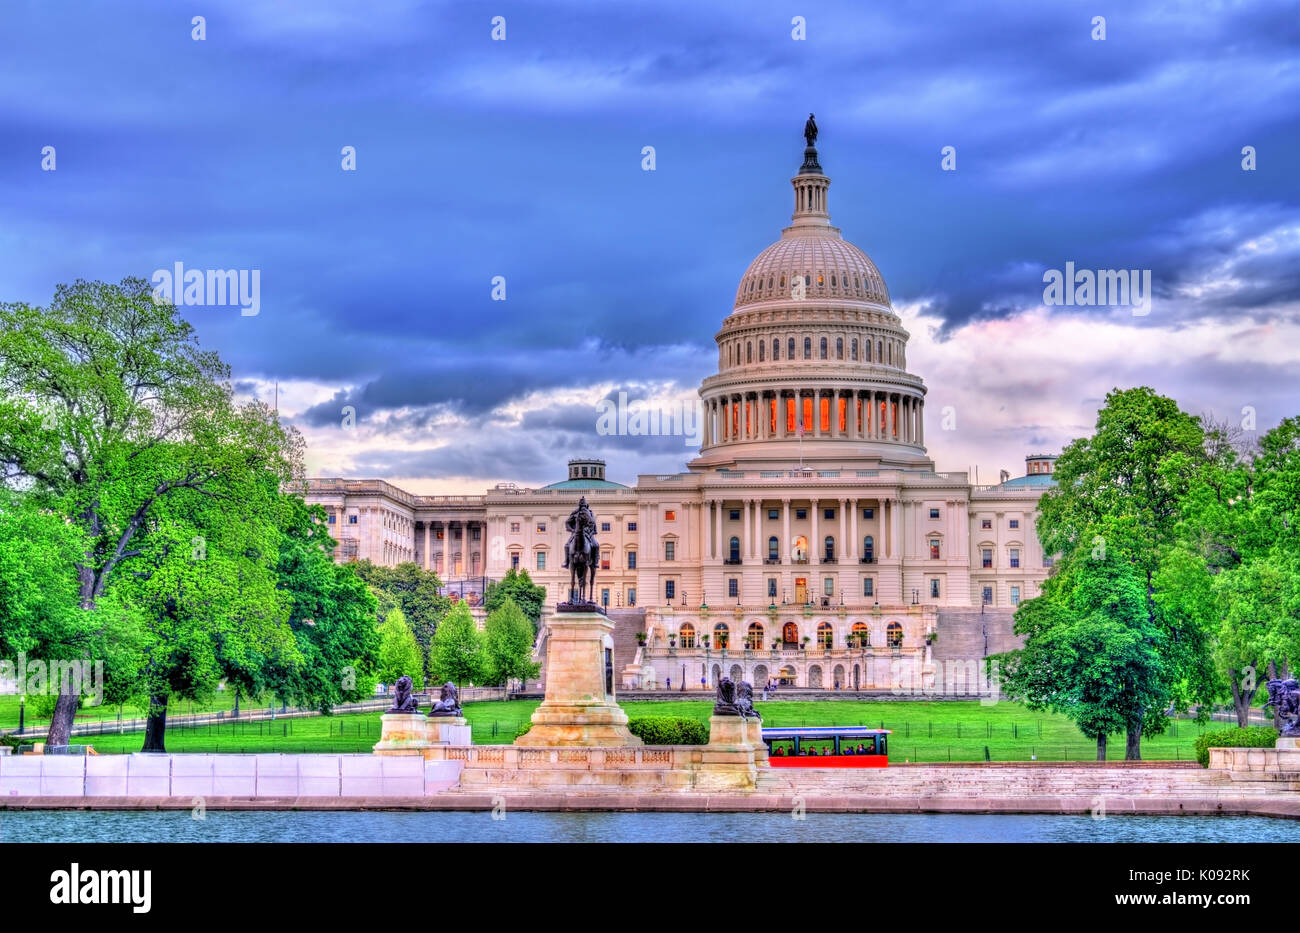 The United States Capitol Building with the Ulysses S. Grant memorial. Washington, DC - Stock Image